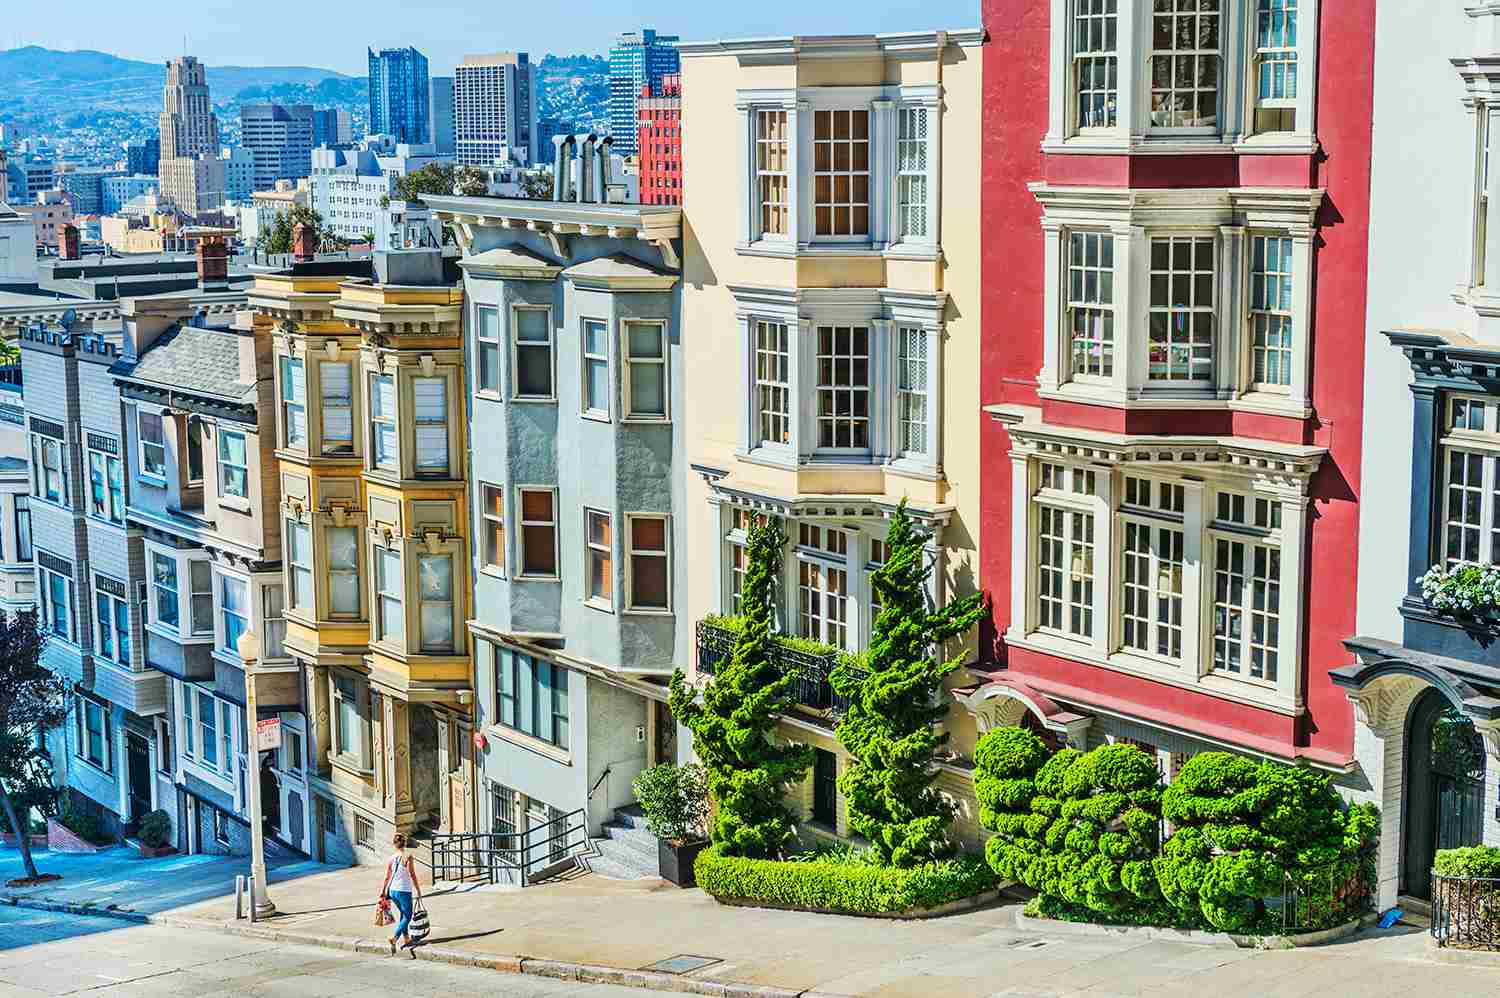 Row of houses on Nob Hill